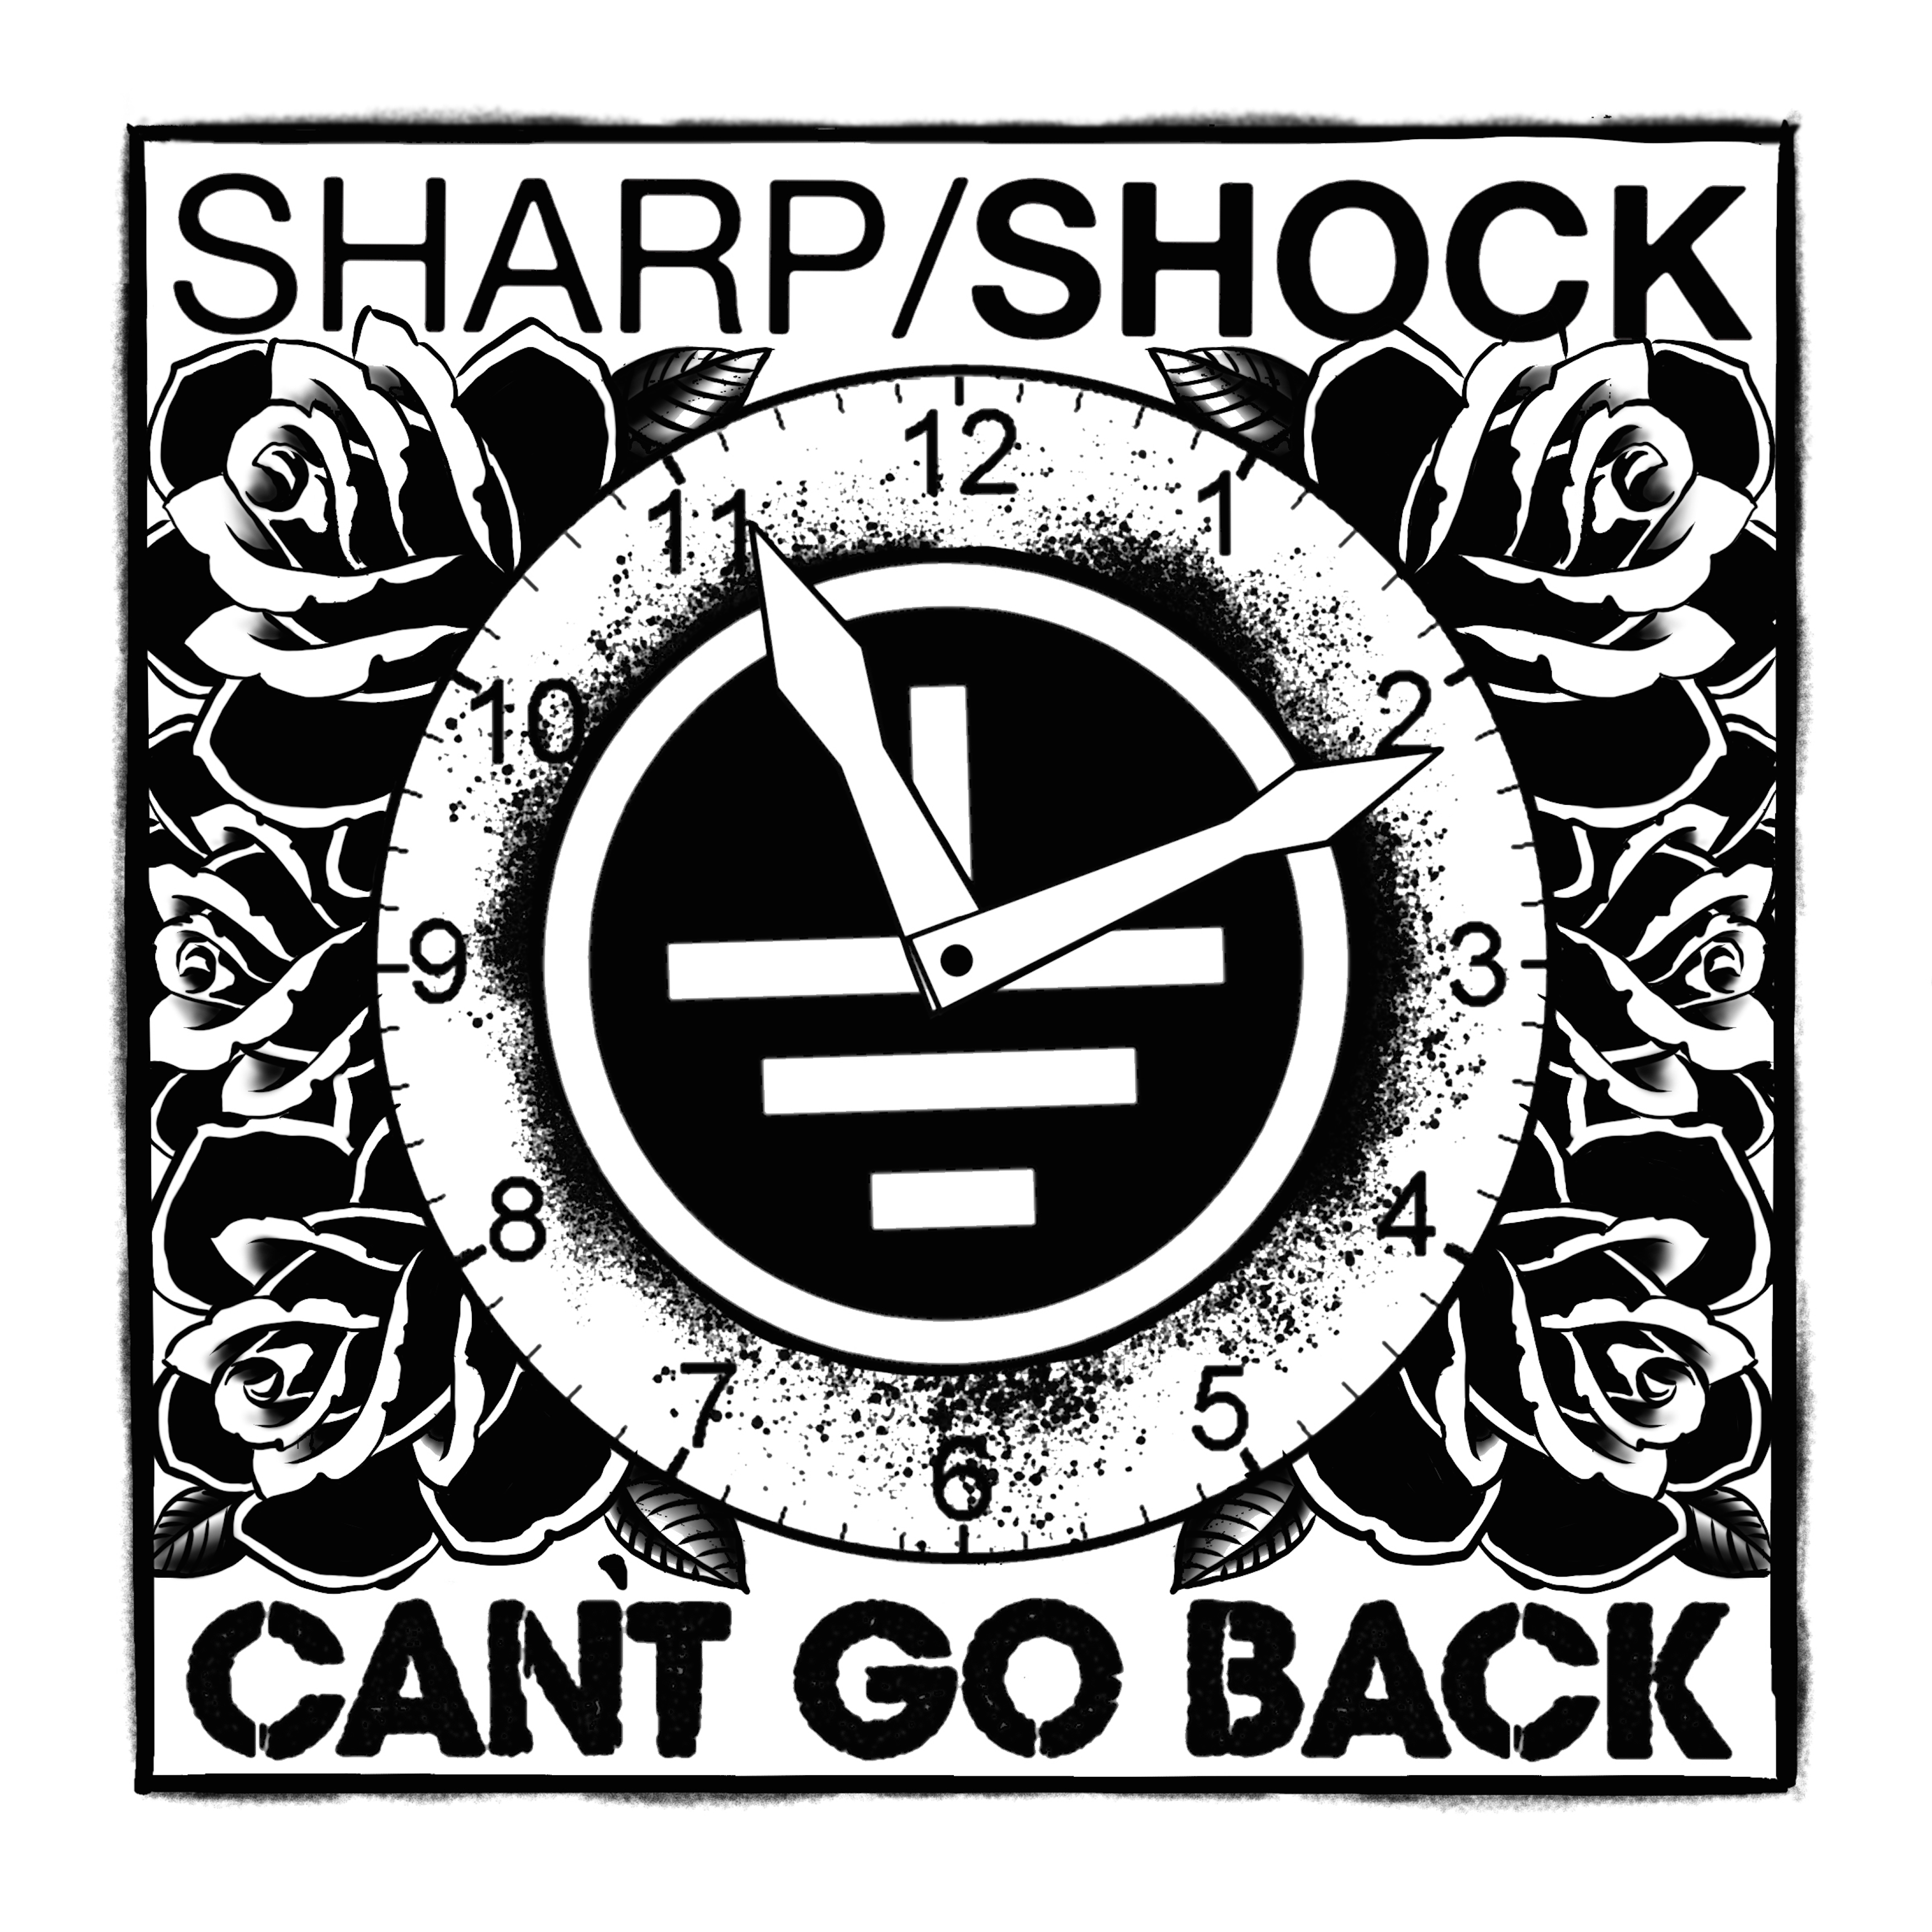 SHARP/SHOCK